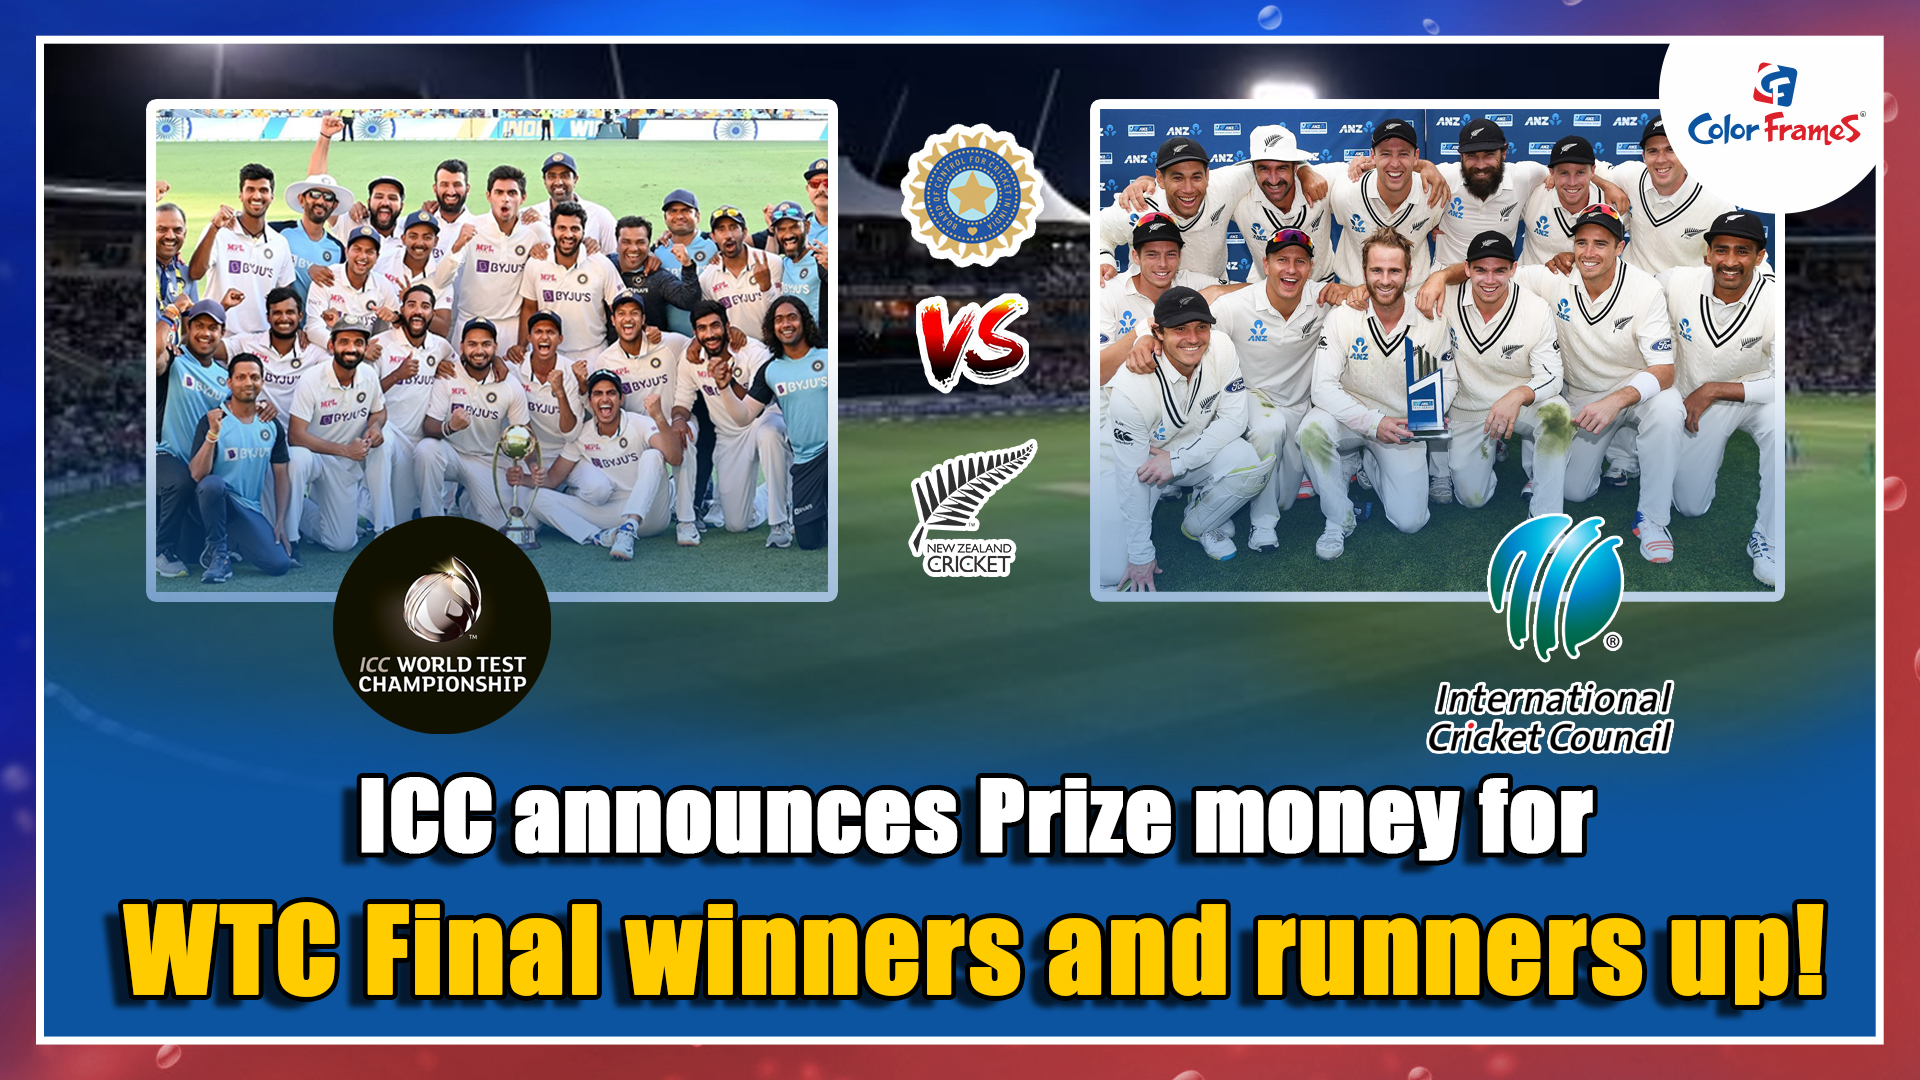 ICC announces Prize money for WTC Final winners and runners up!